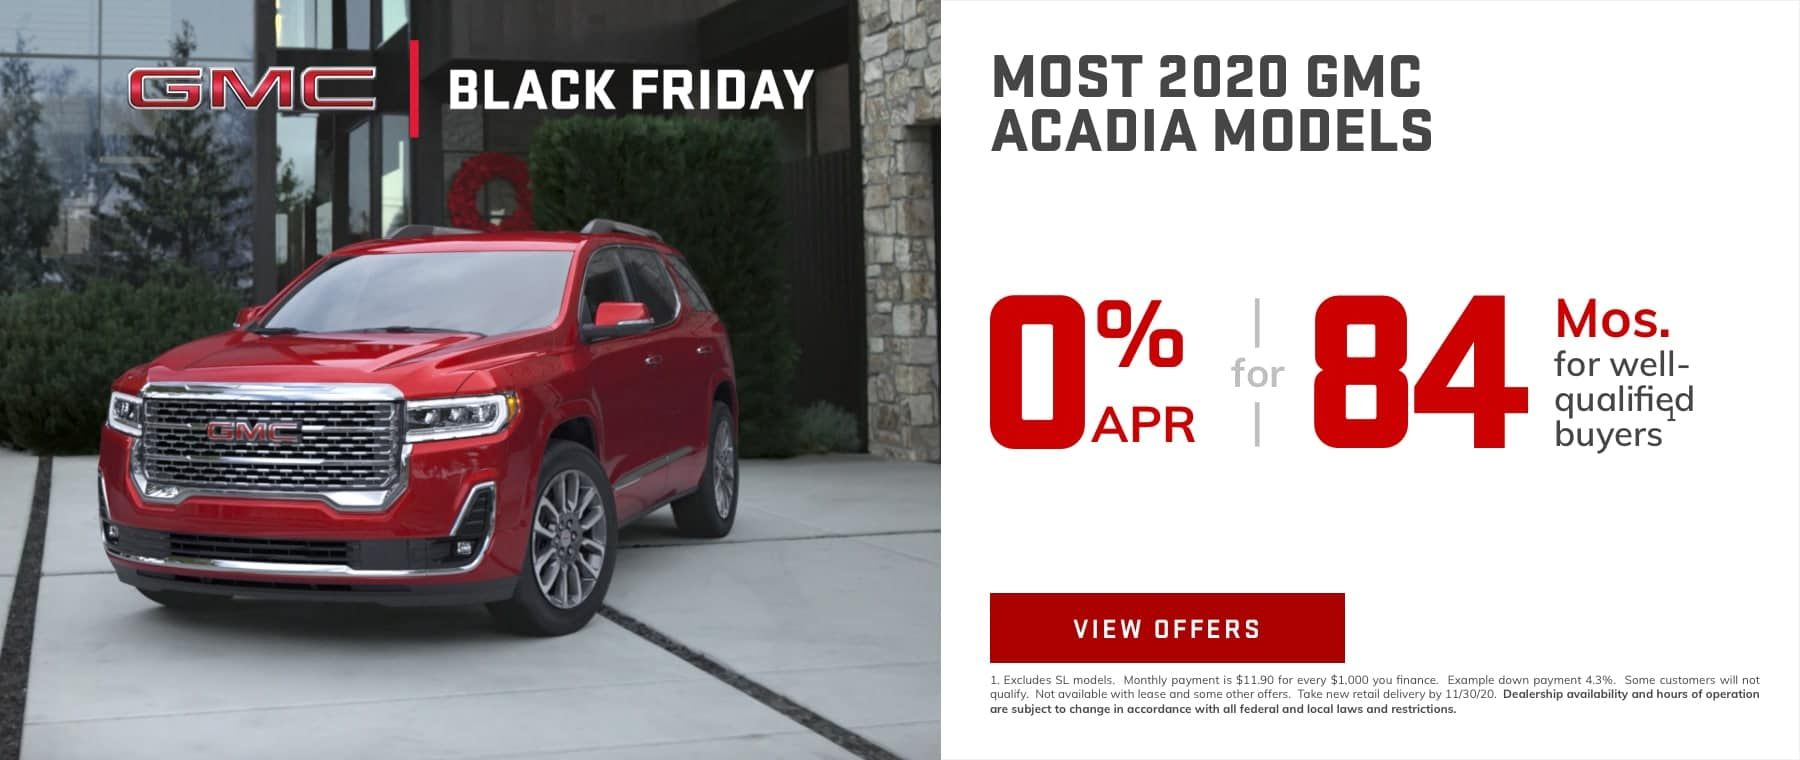 MOST 2020 GMC ACADIA MODELS - 0% APR for 84 months for well-qualified buyers.1